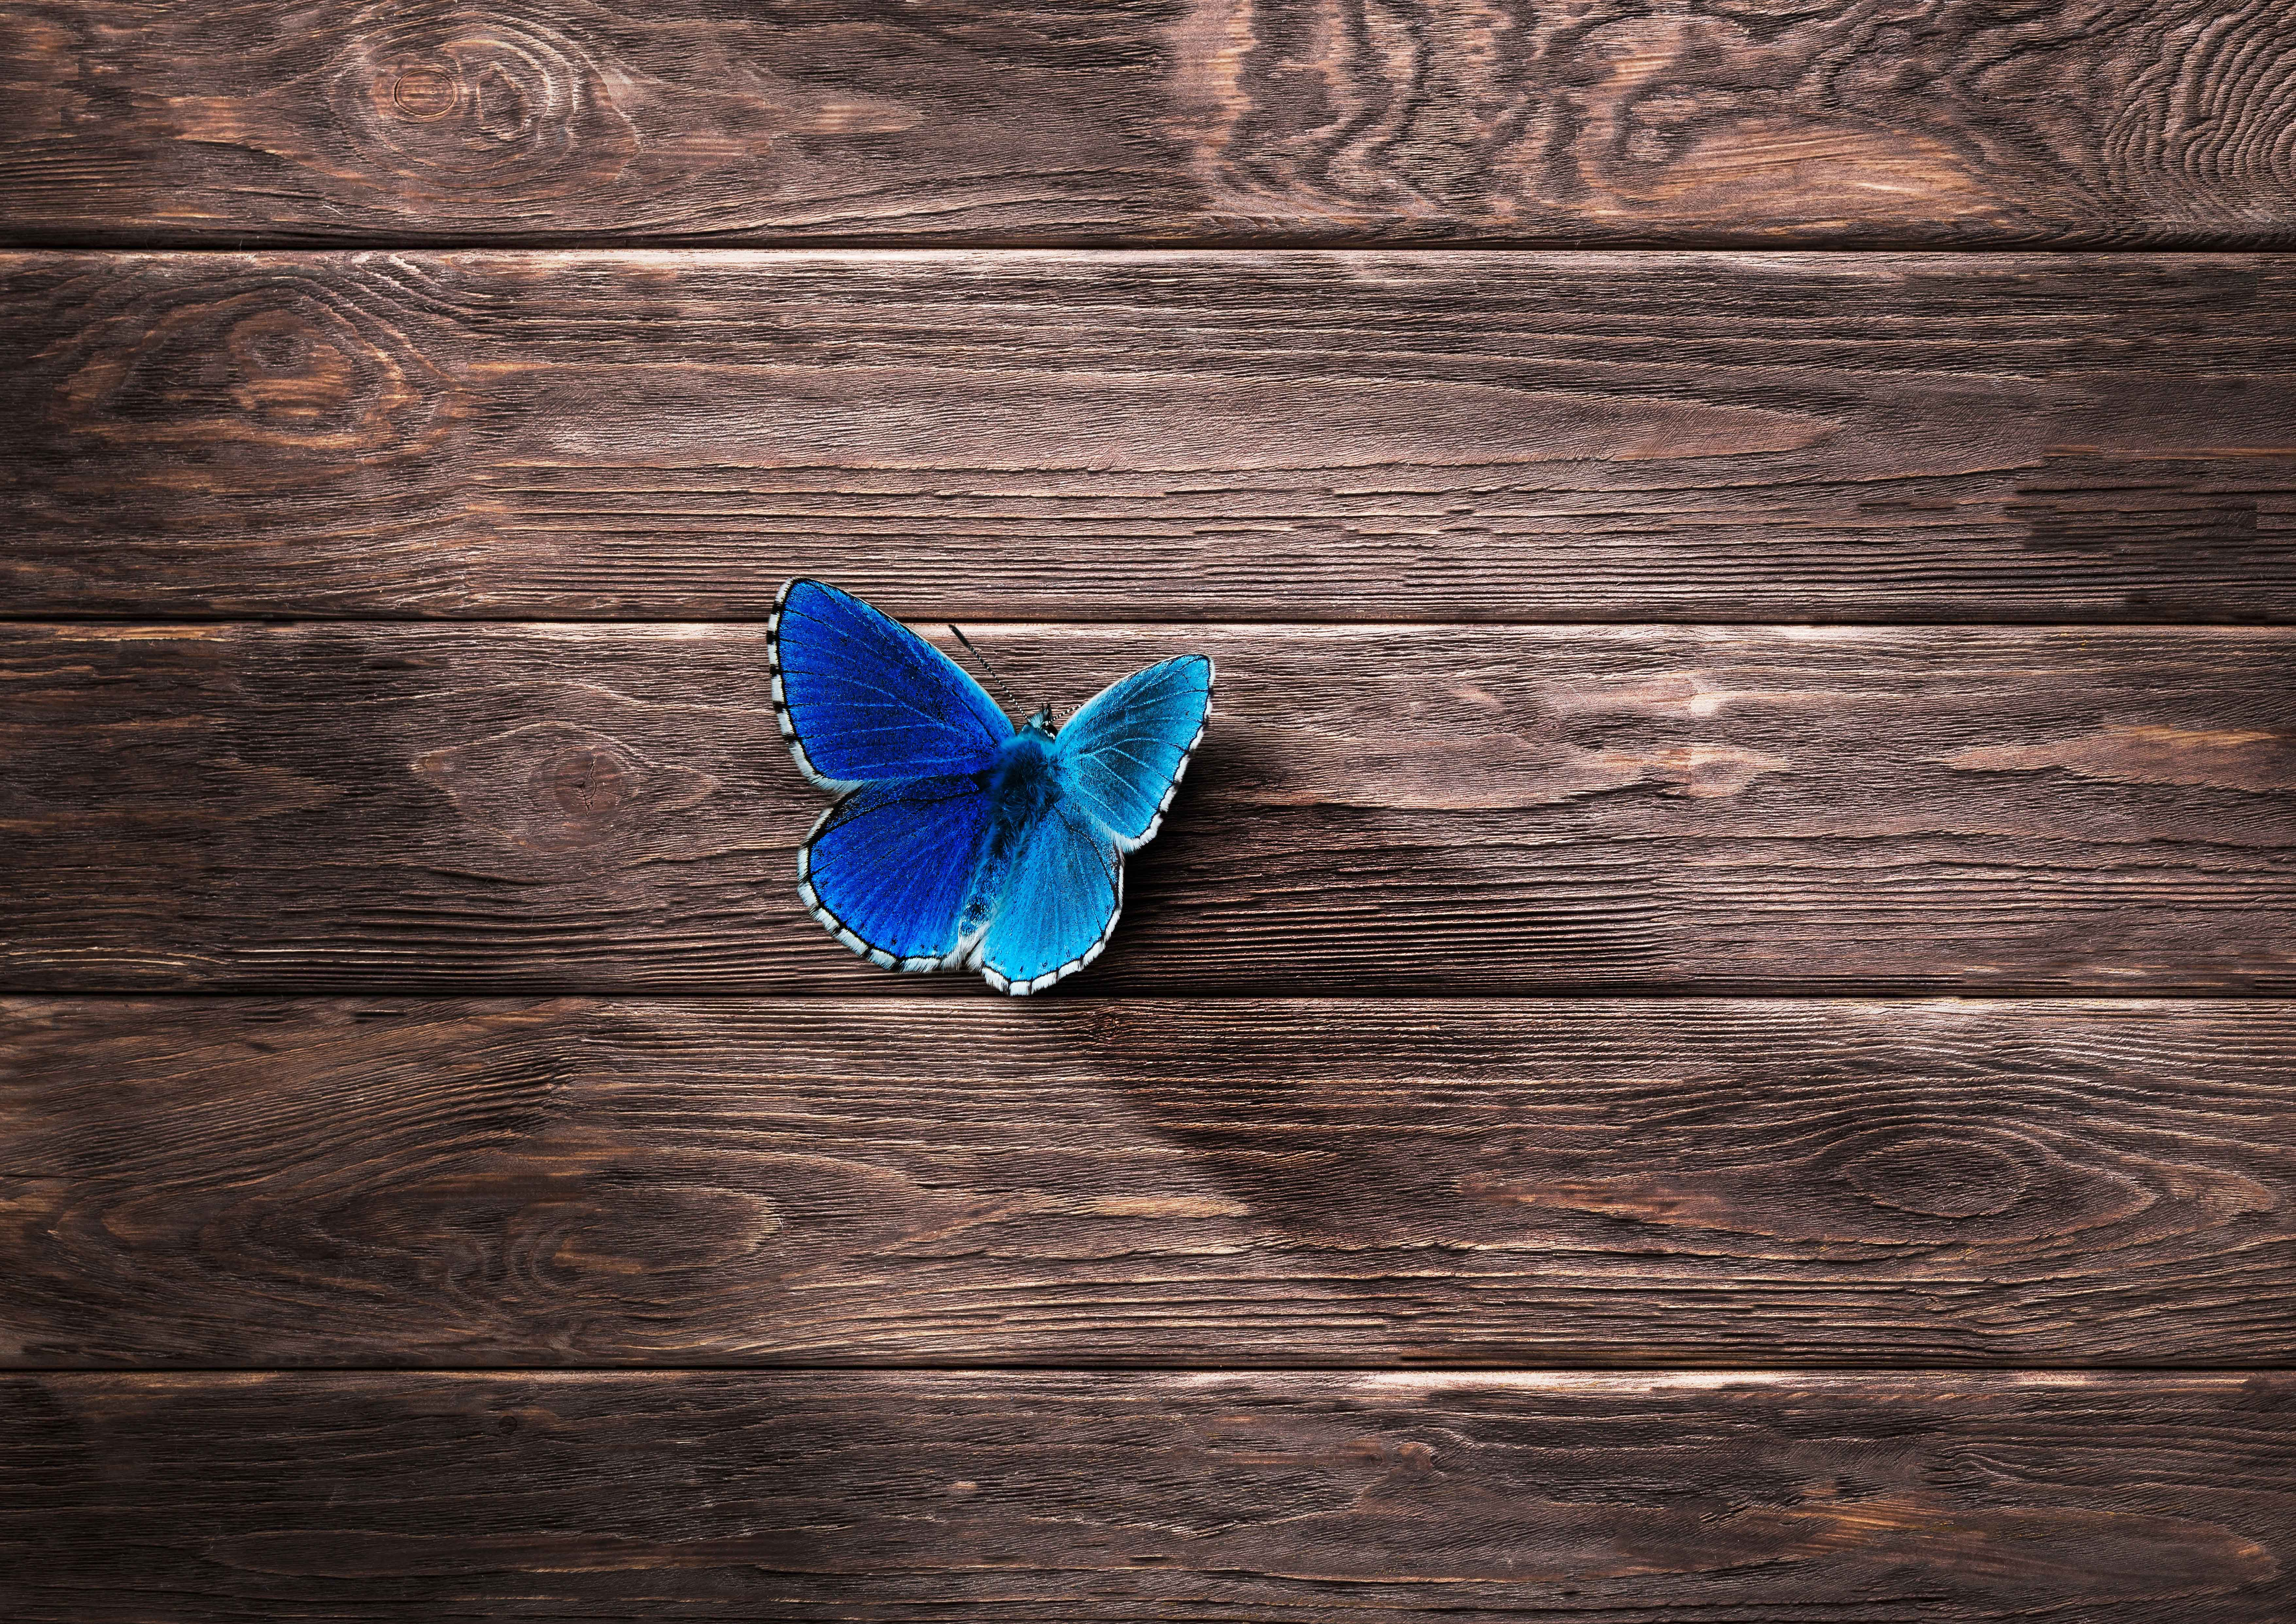 Butterfly 8k hd animals 4k wallpapers images - 8k animal wallpaper ...